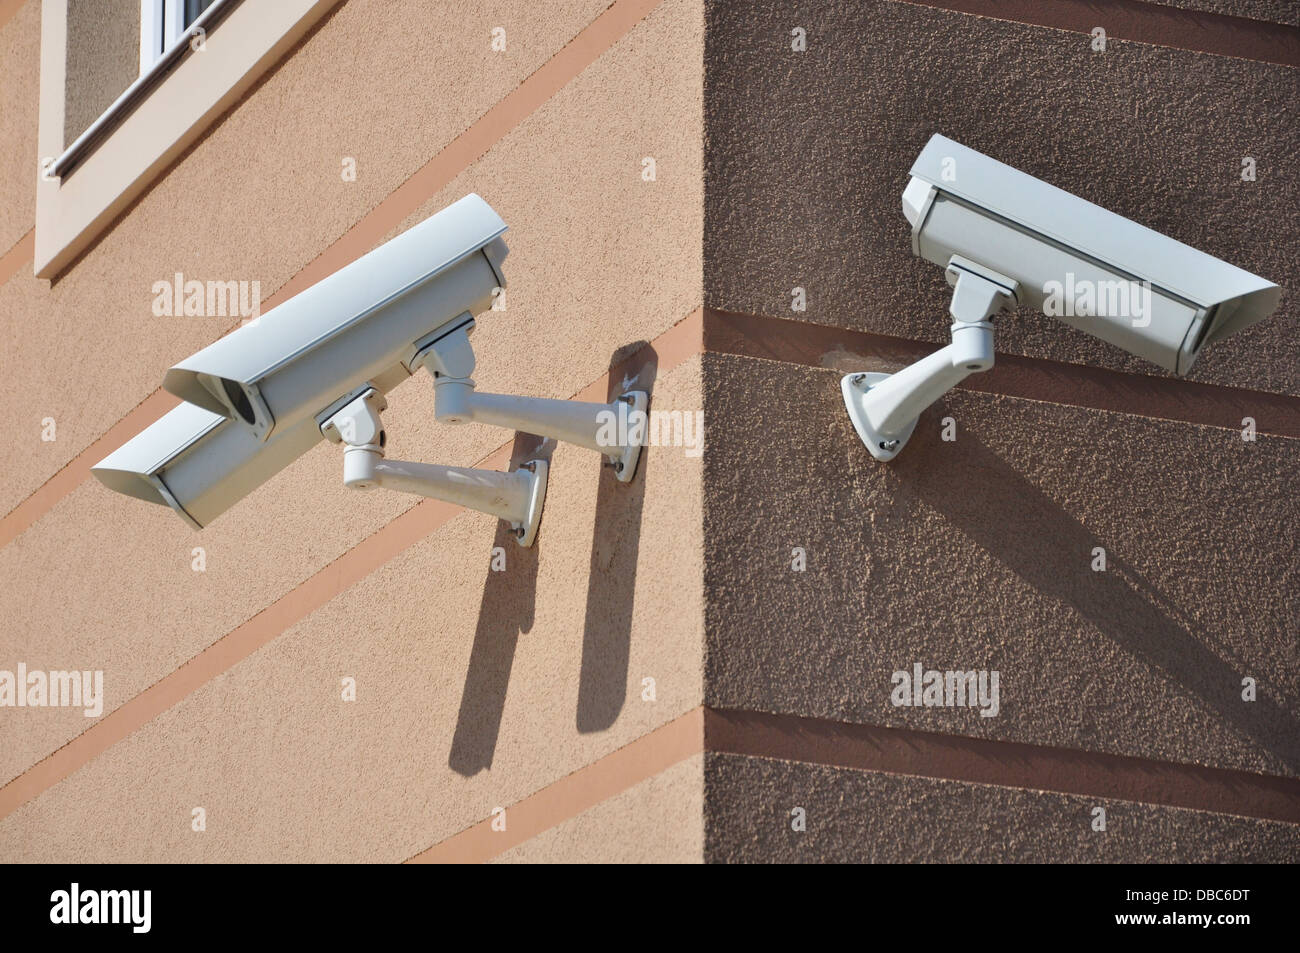 building with security cameras watching around - Stock Image